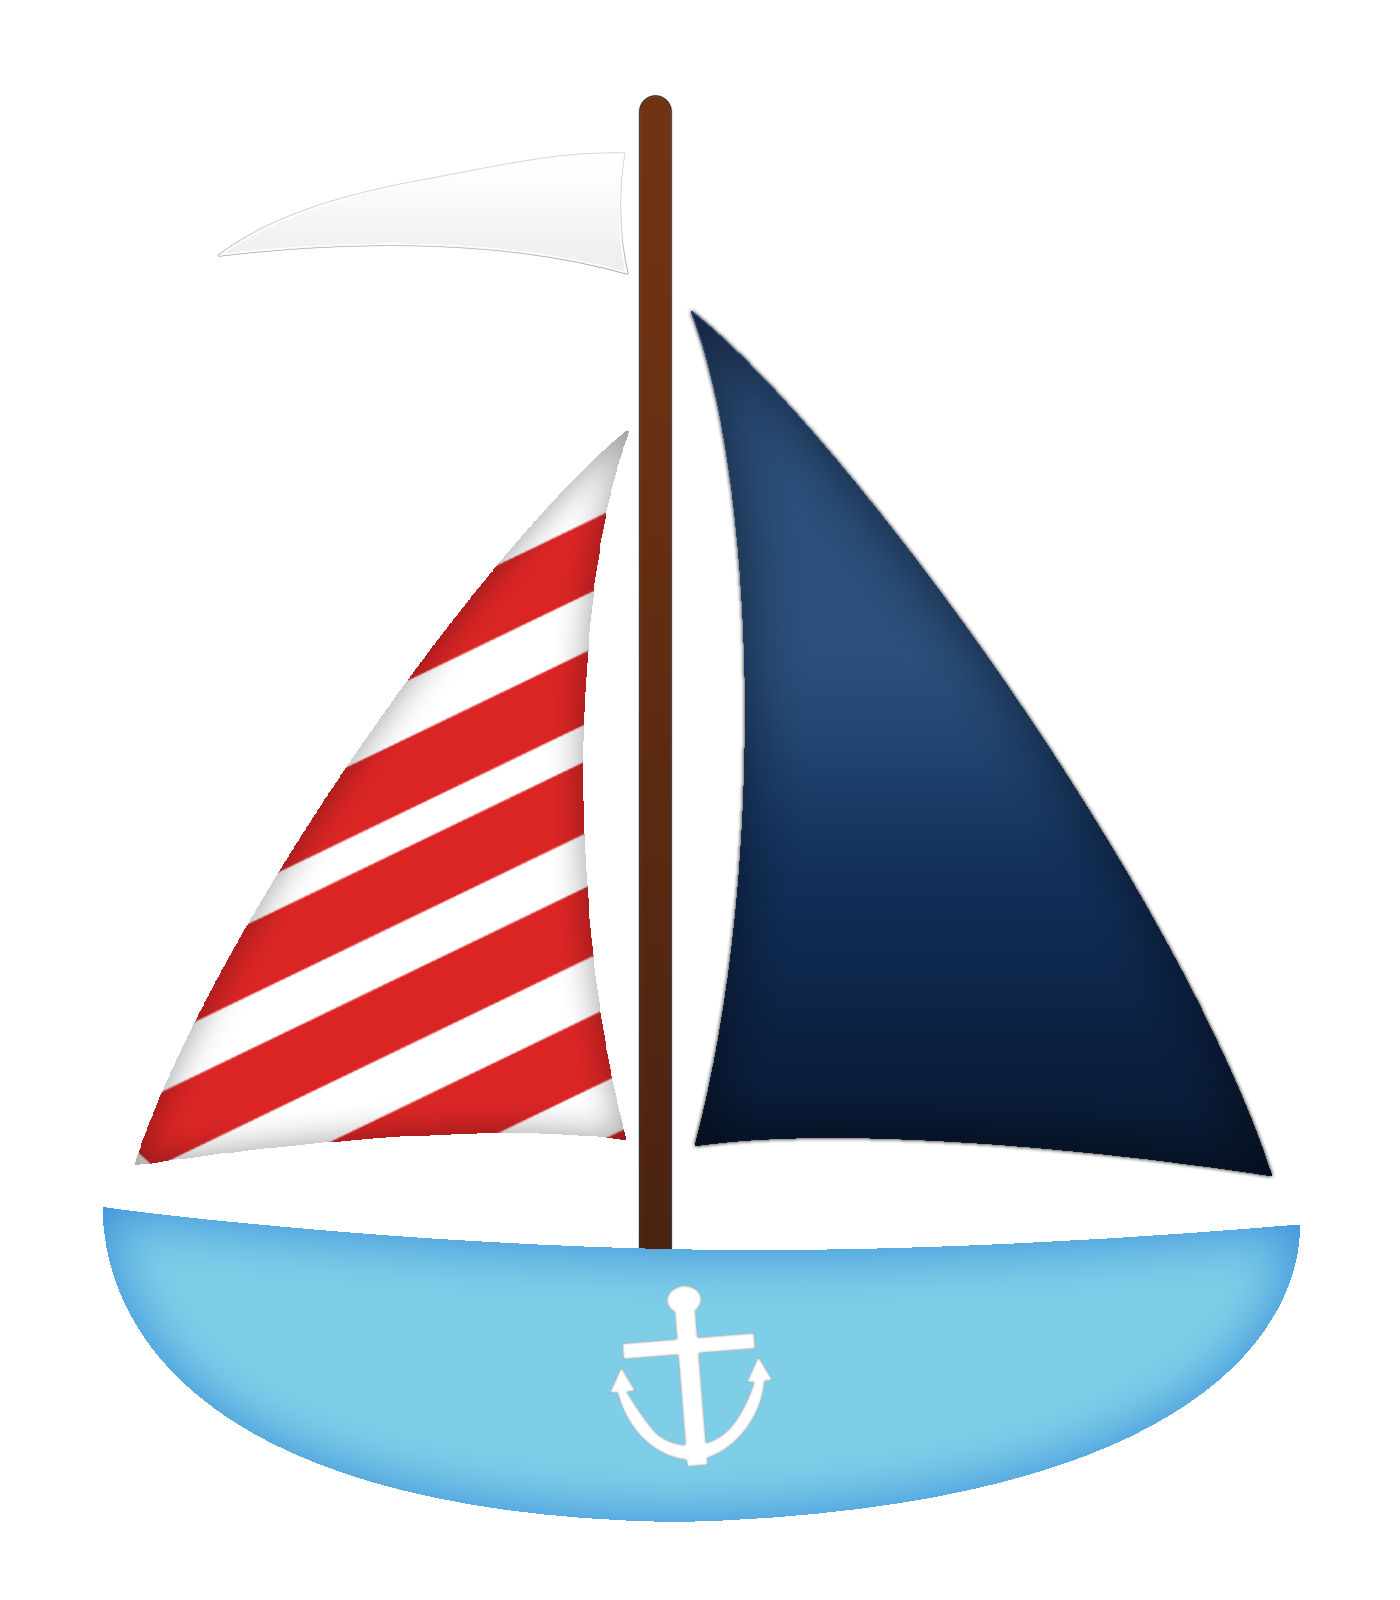 Sail pinterest boats boating. Boat clipart nautical